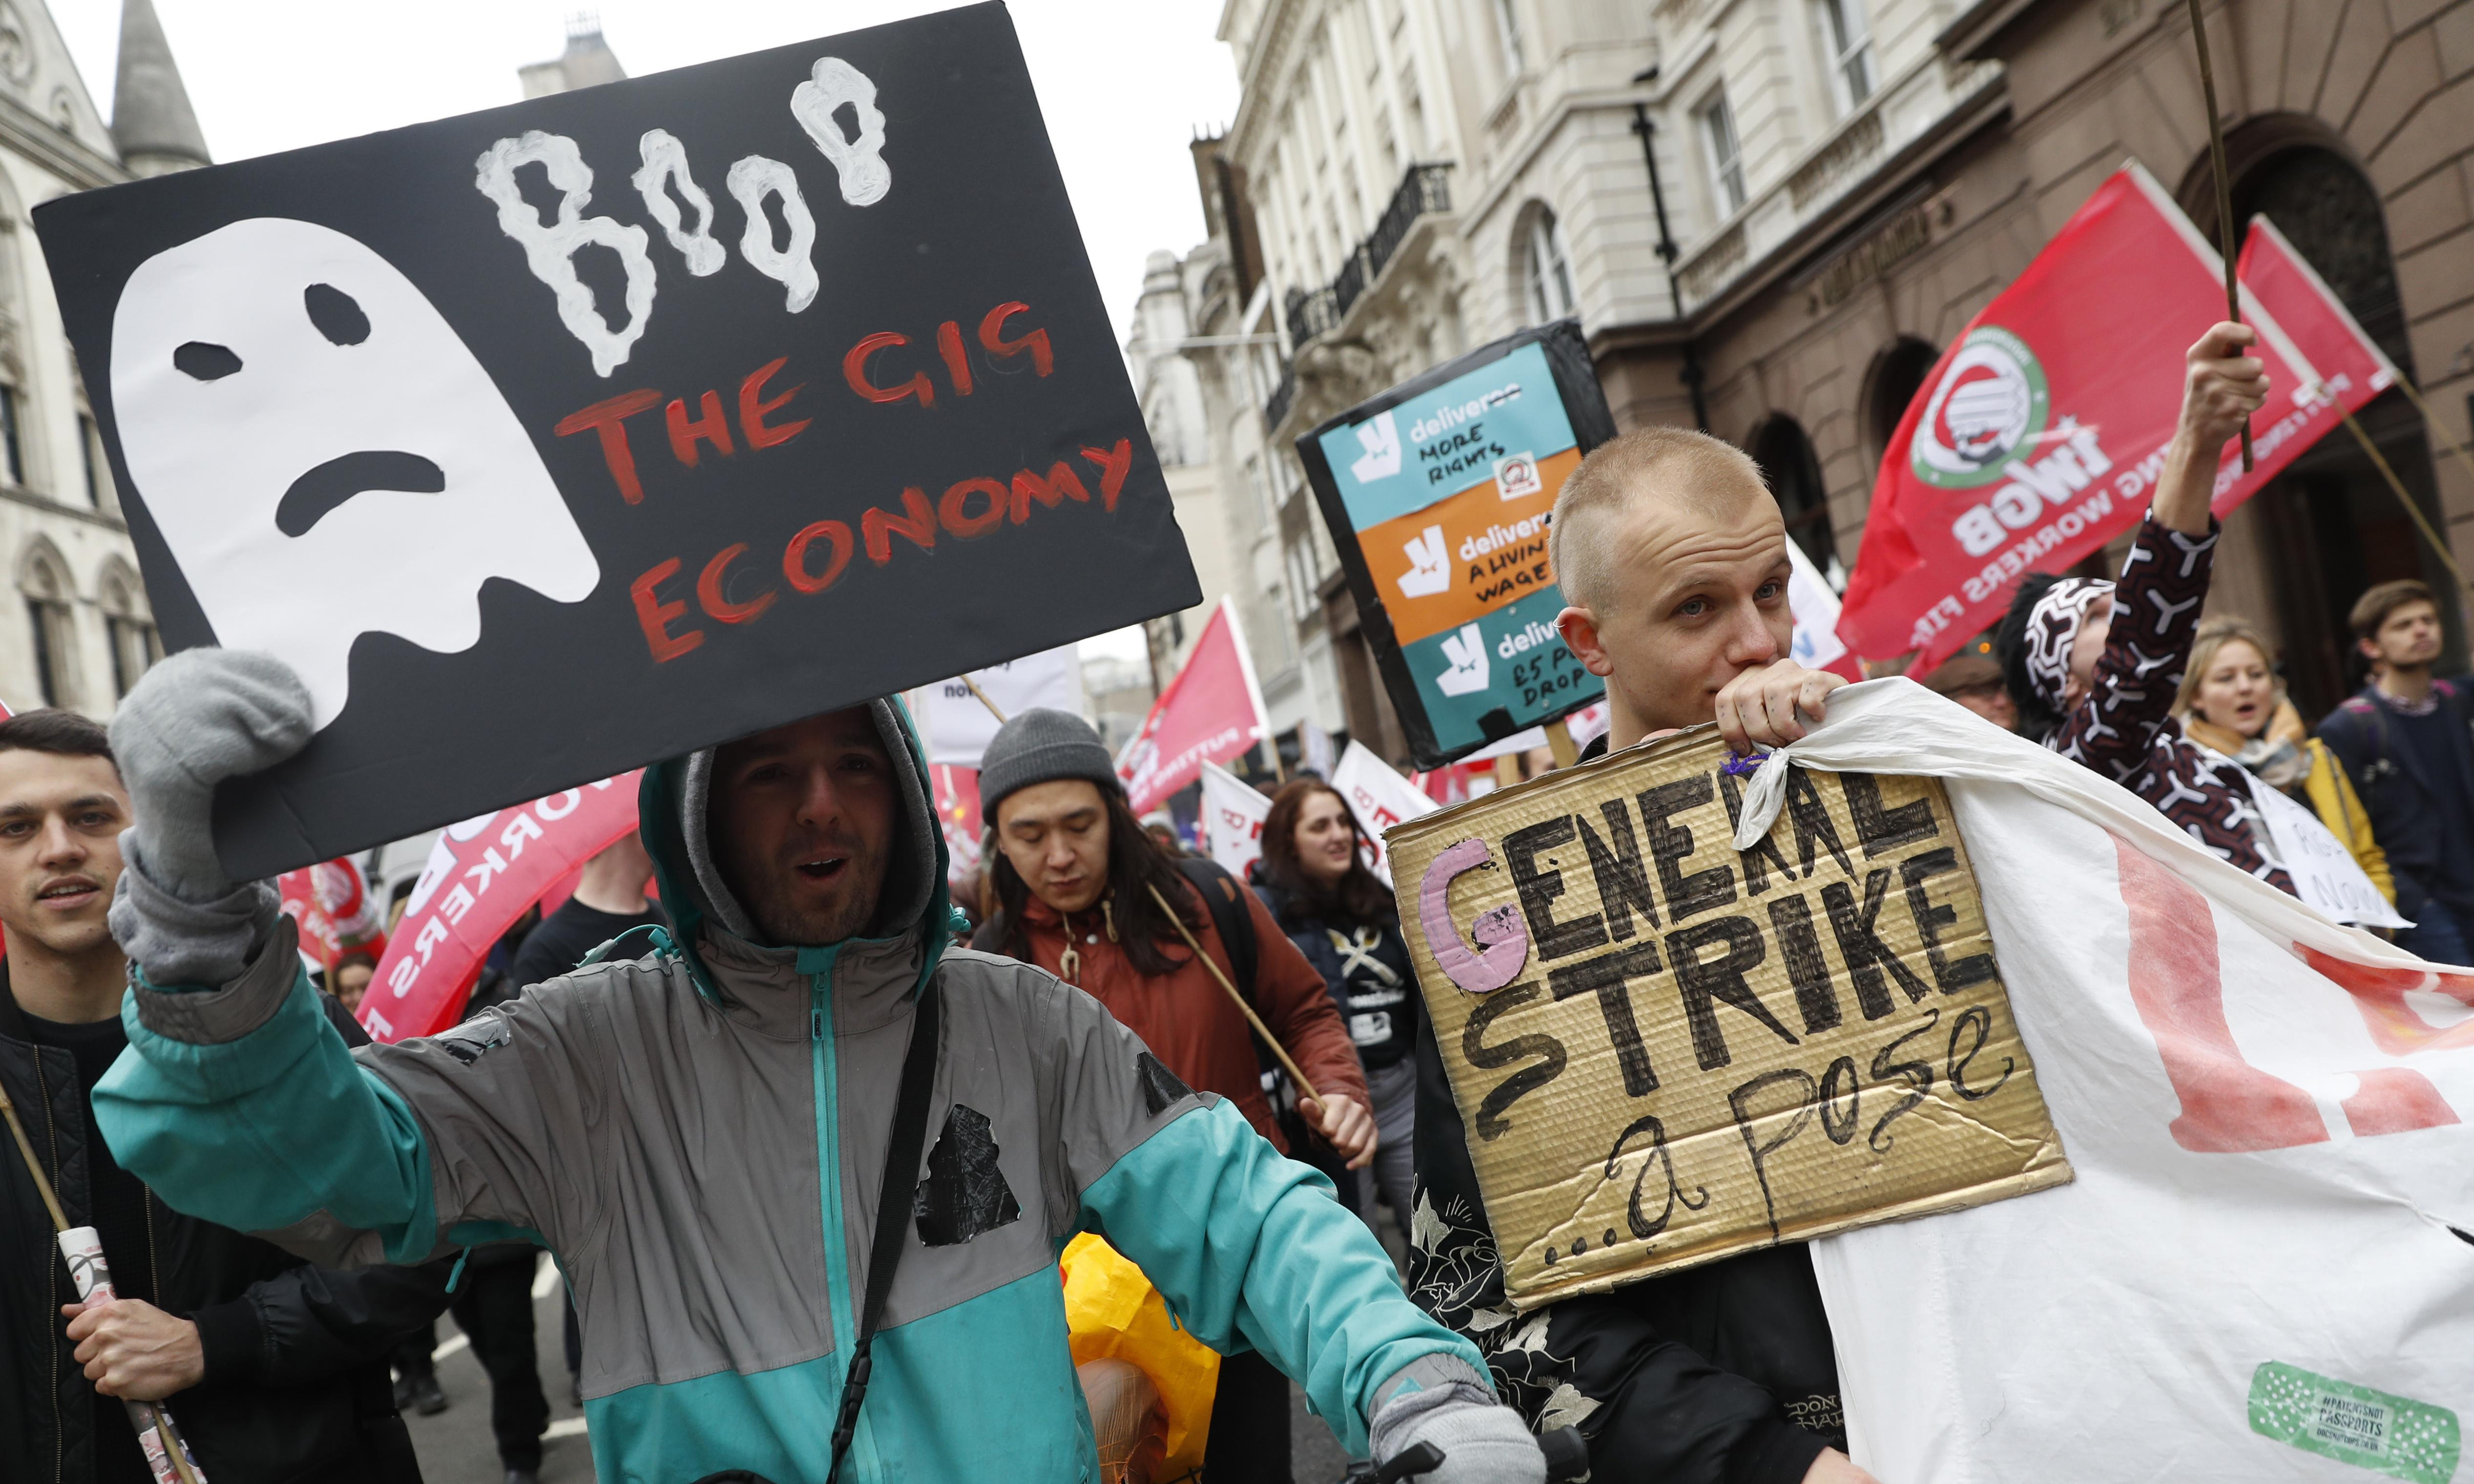 The demise of the middle classes is toxifying British politics